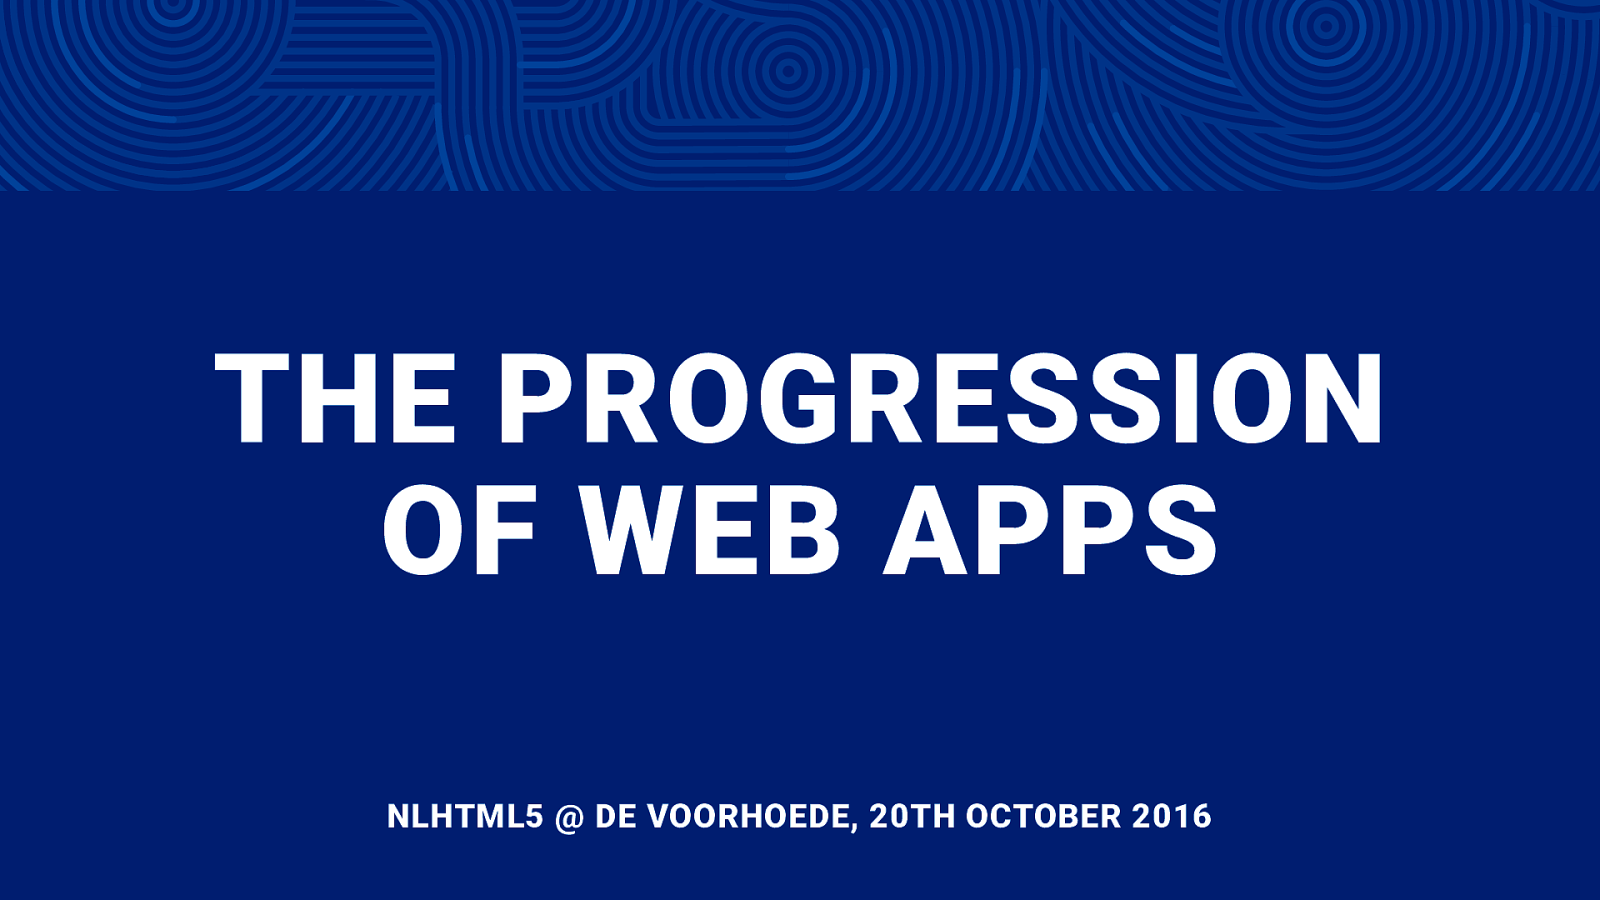 The Progression of Web Apps